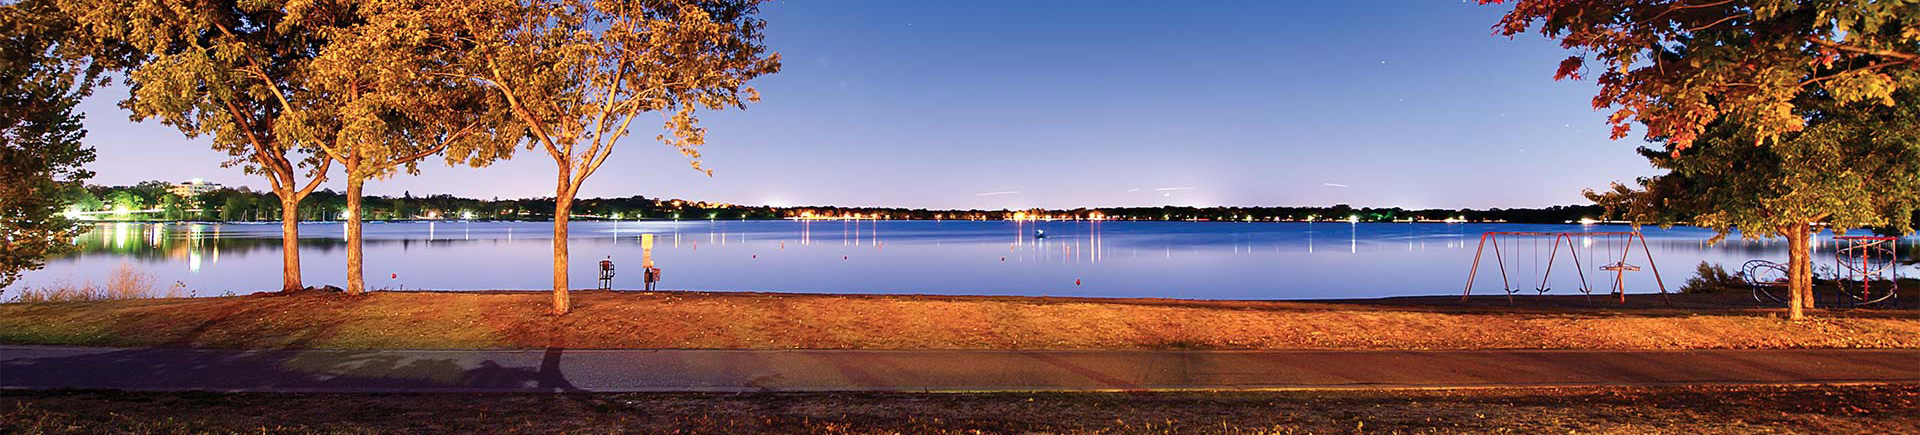 Calhoun Beach Club Apartments in Minneapolis, MN - Lake Calhoun